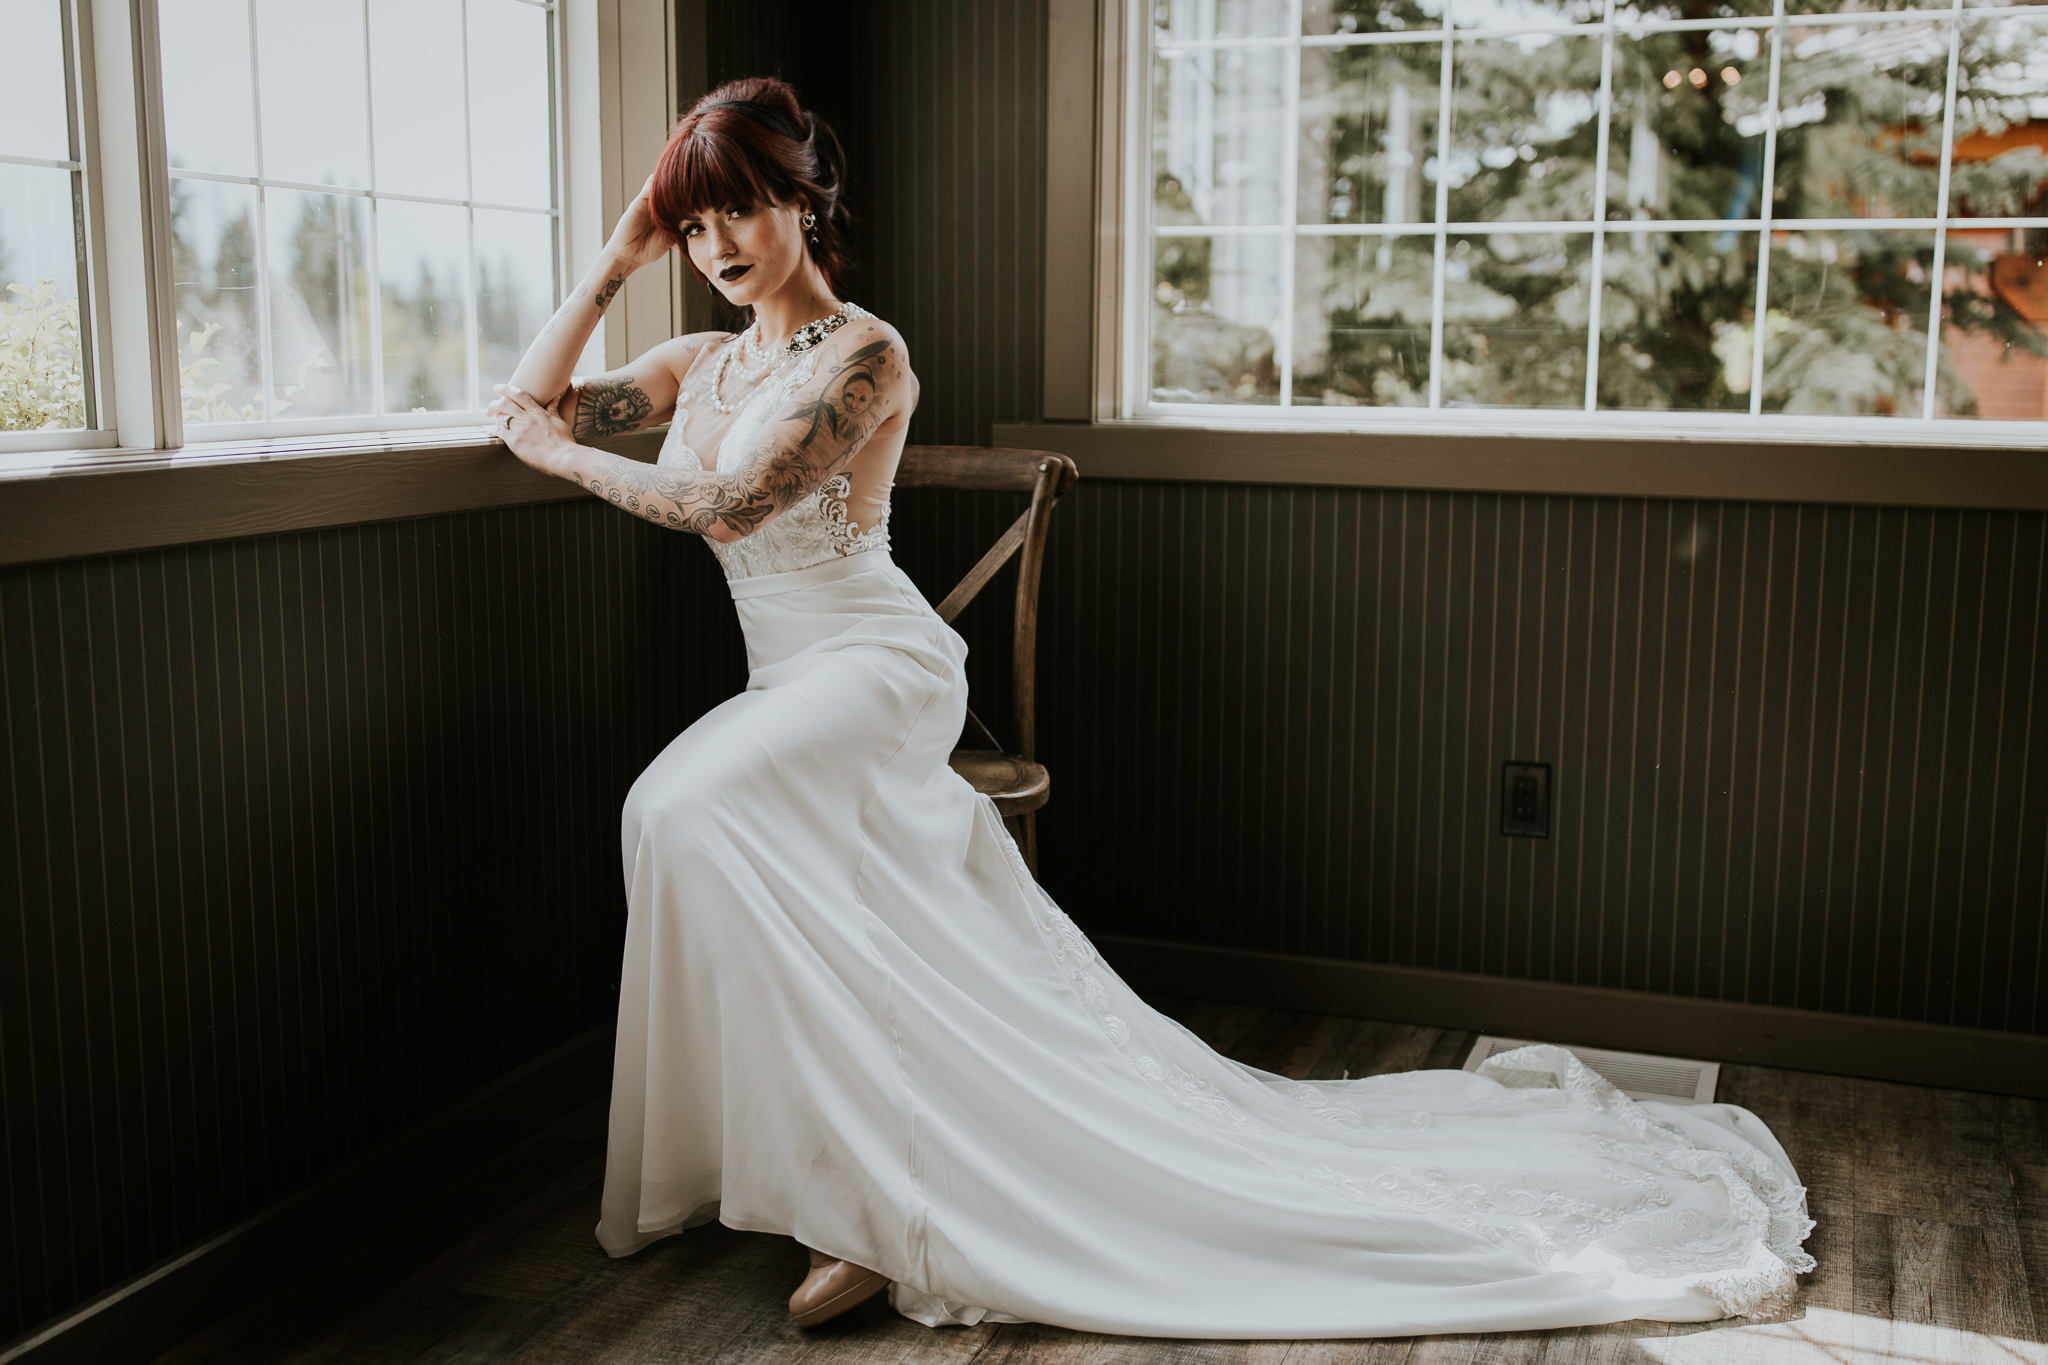 Tattooed, pin-up style bride with red hair in chair leaning against window at Creekside Villa wedding